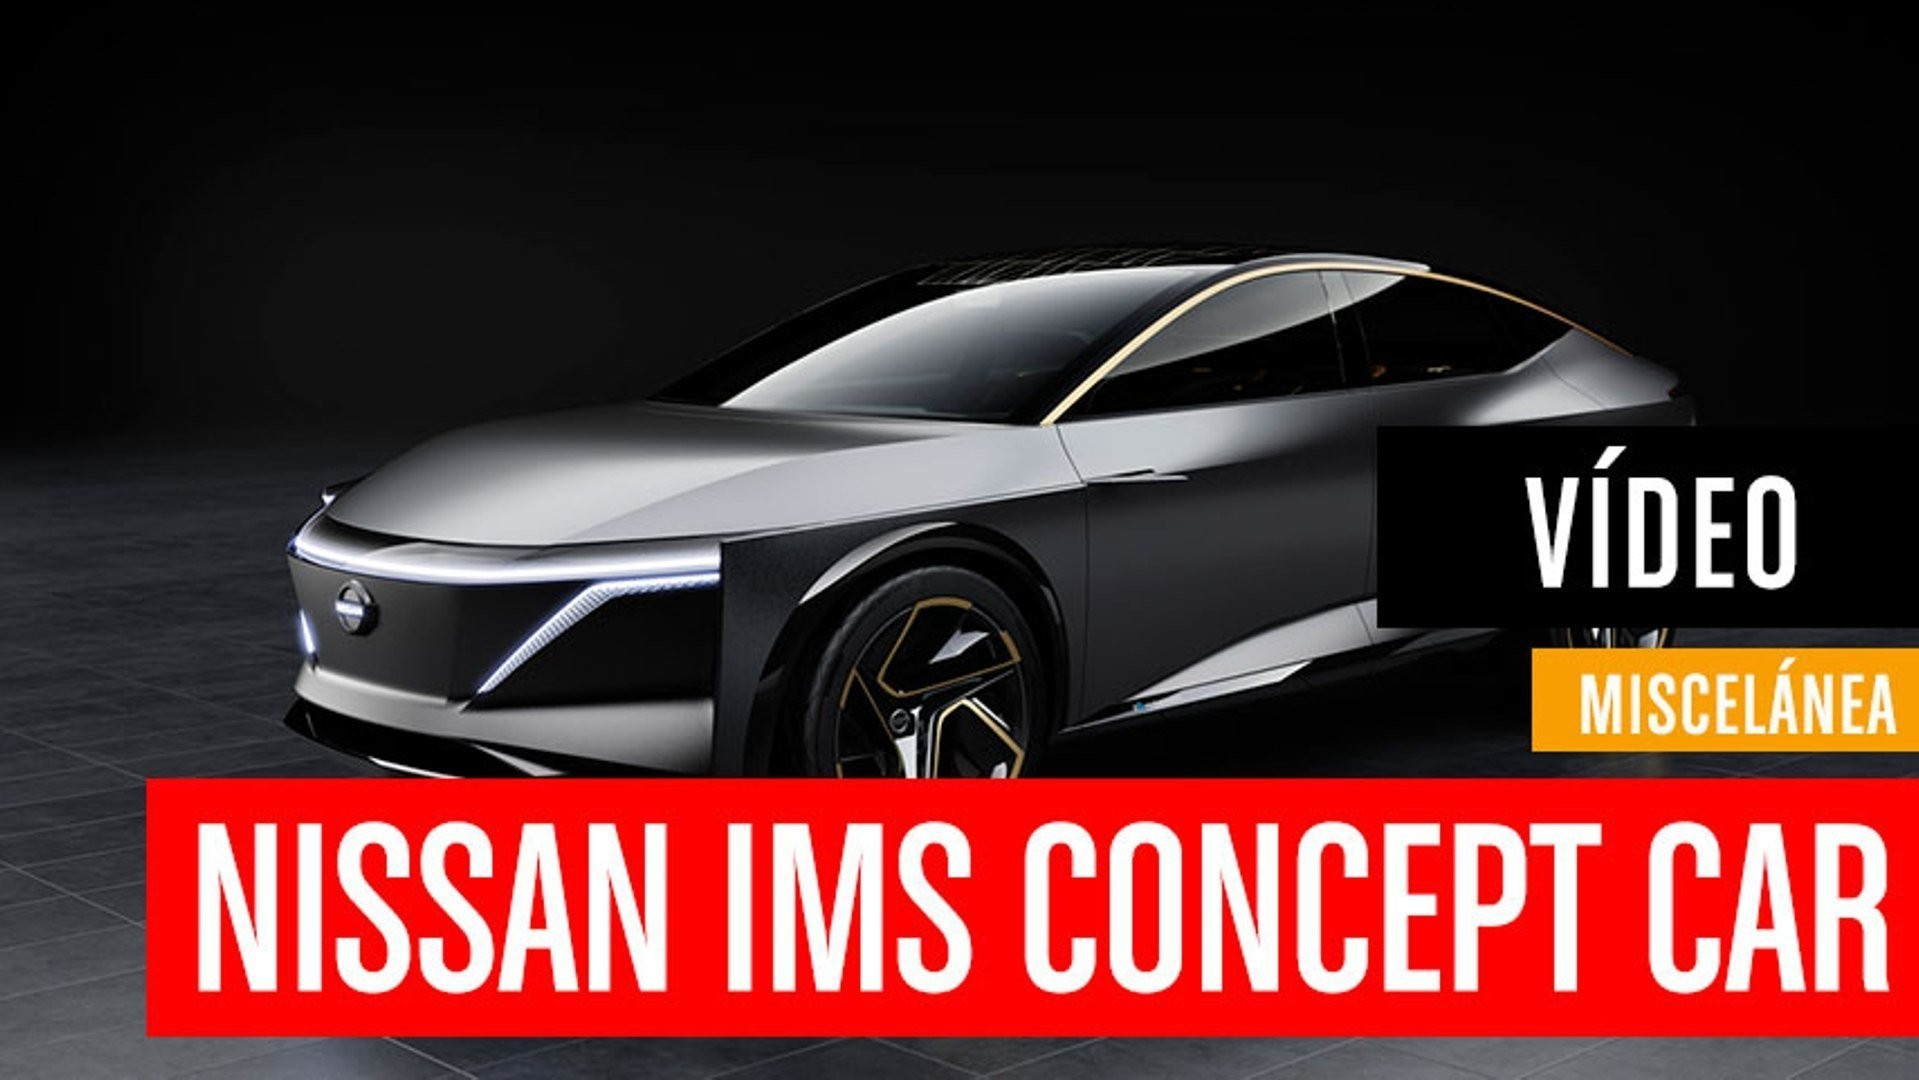 Nissan IMs Concept Car